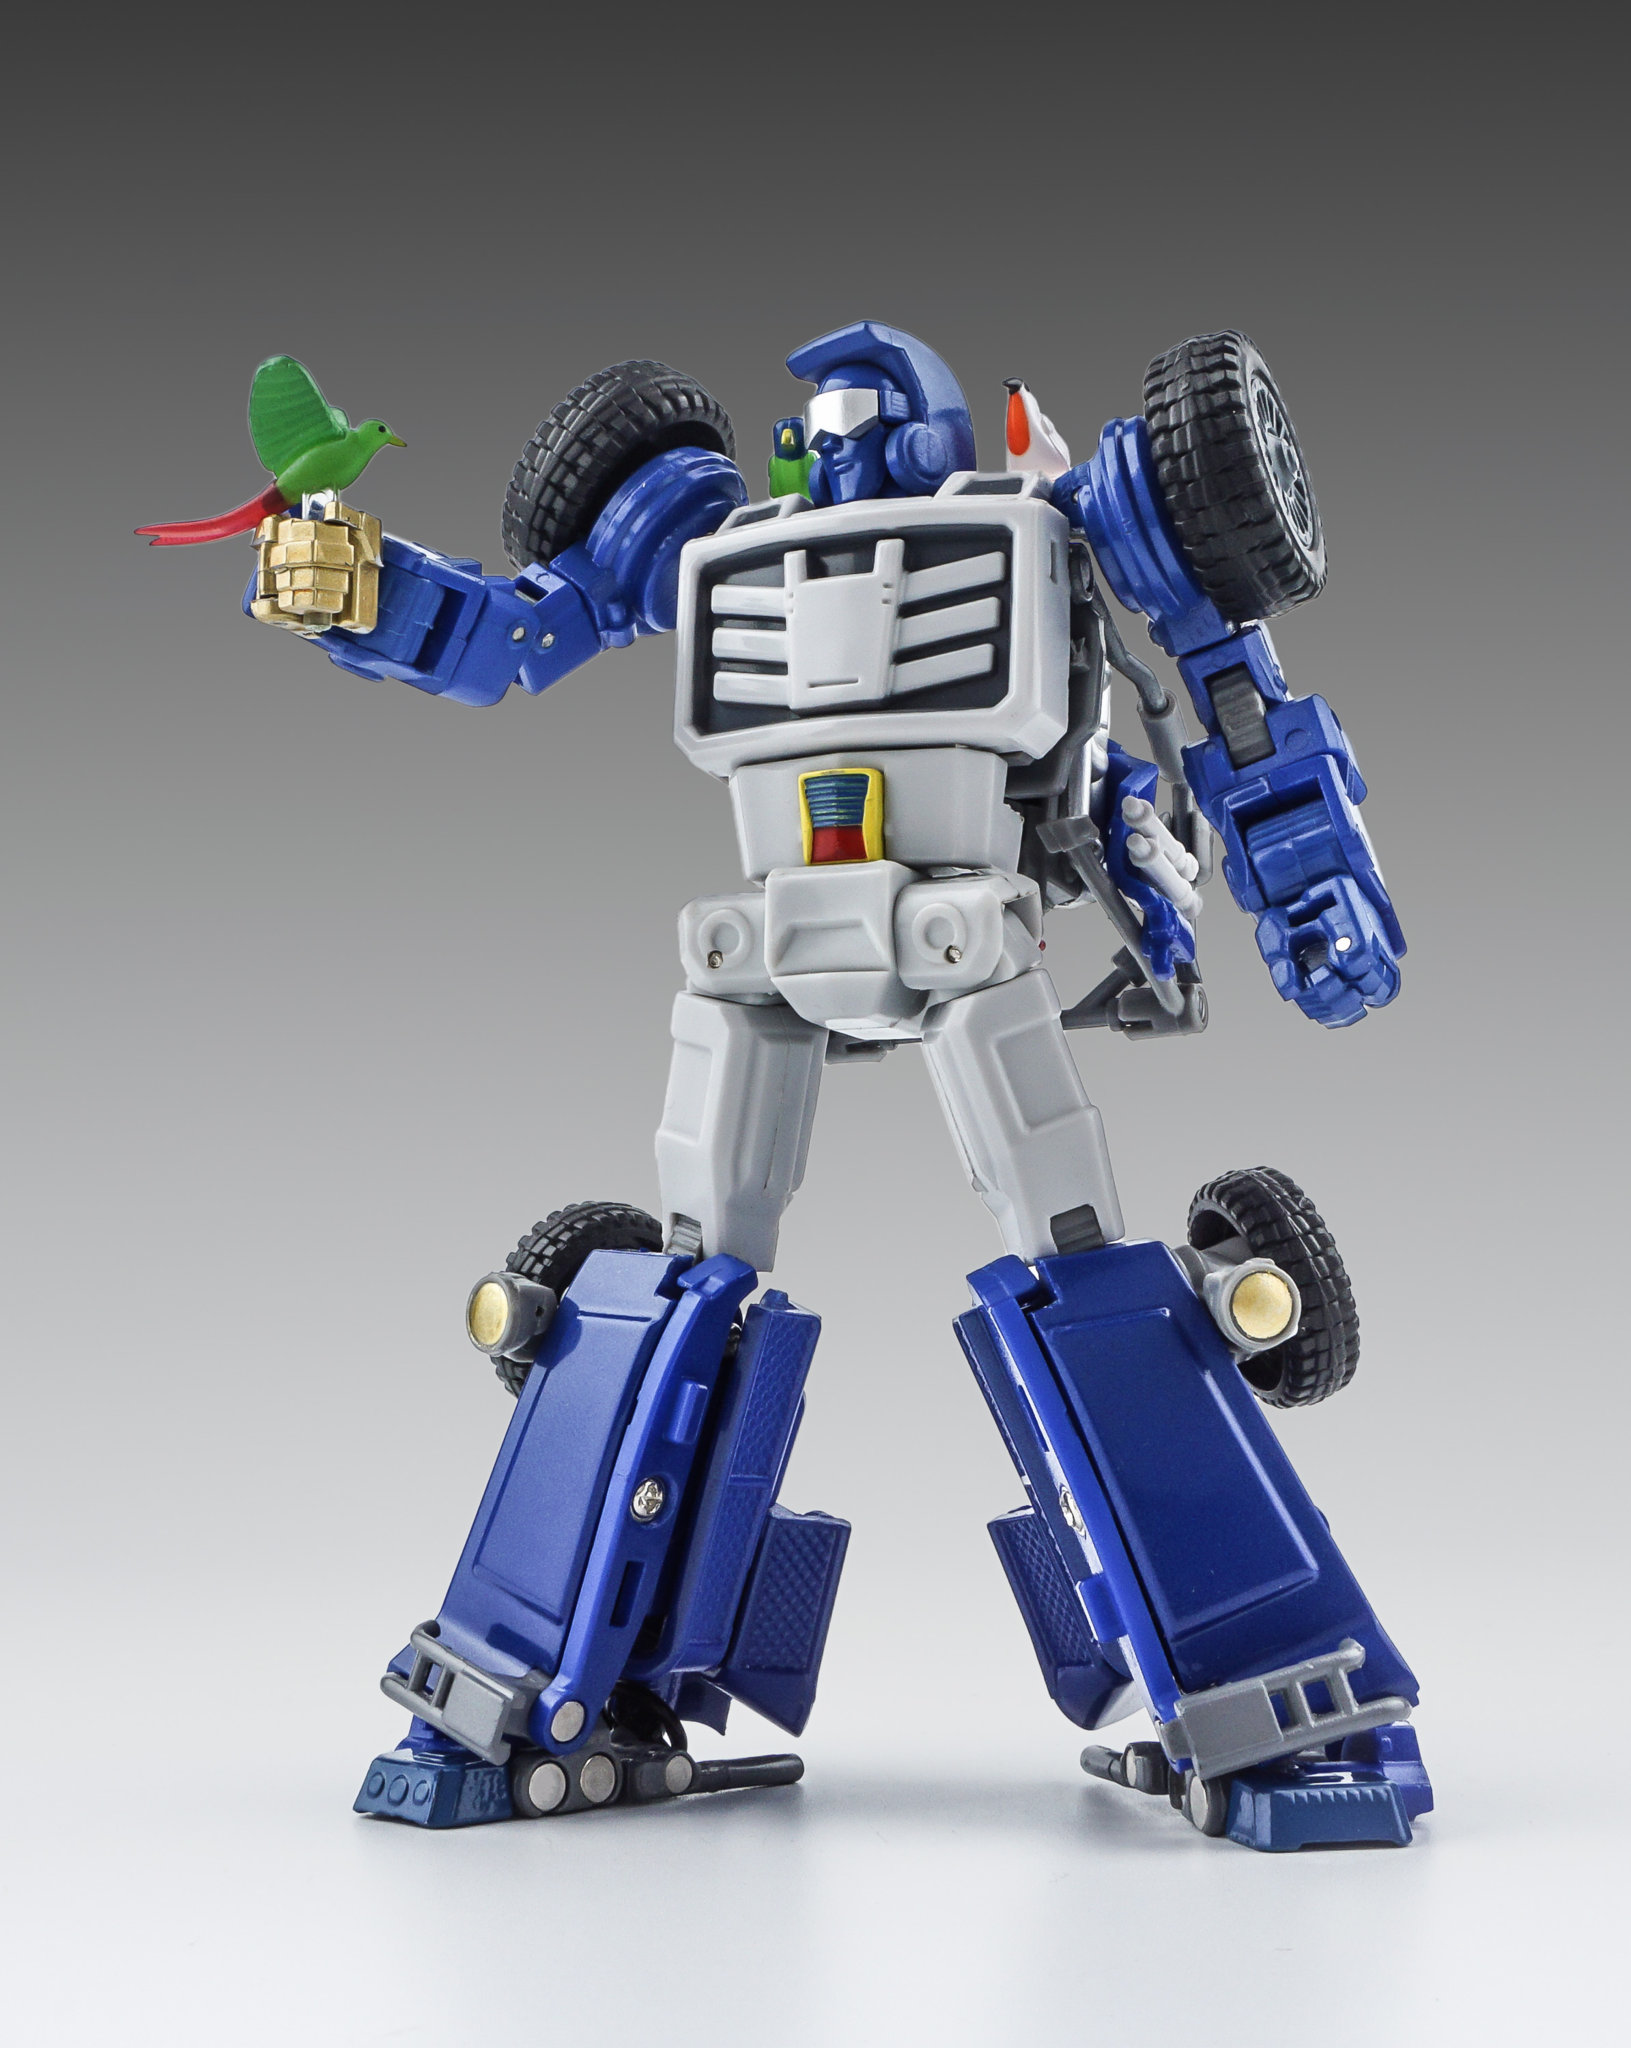 NEW X-TRANSBOTS Transformers MM-VIII Arkose G2 Color Beachcomber Figure In Stock